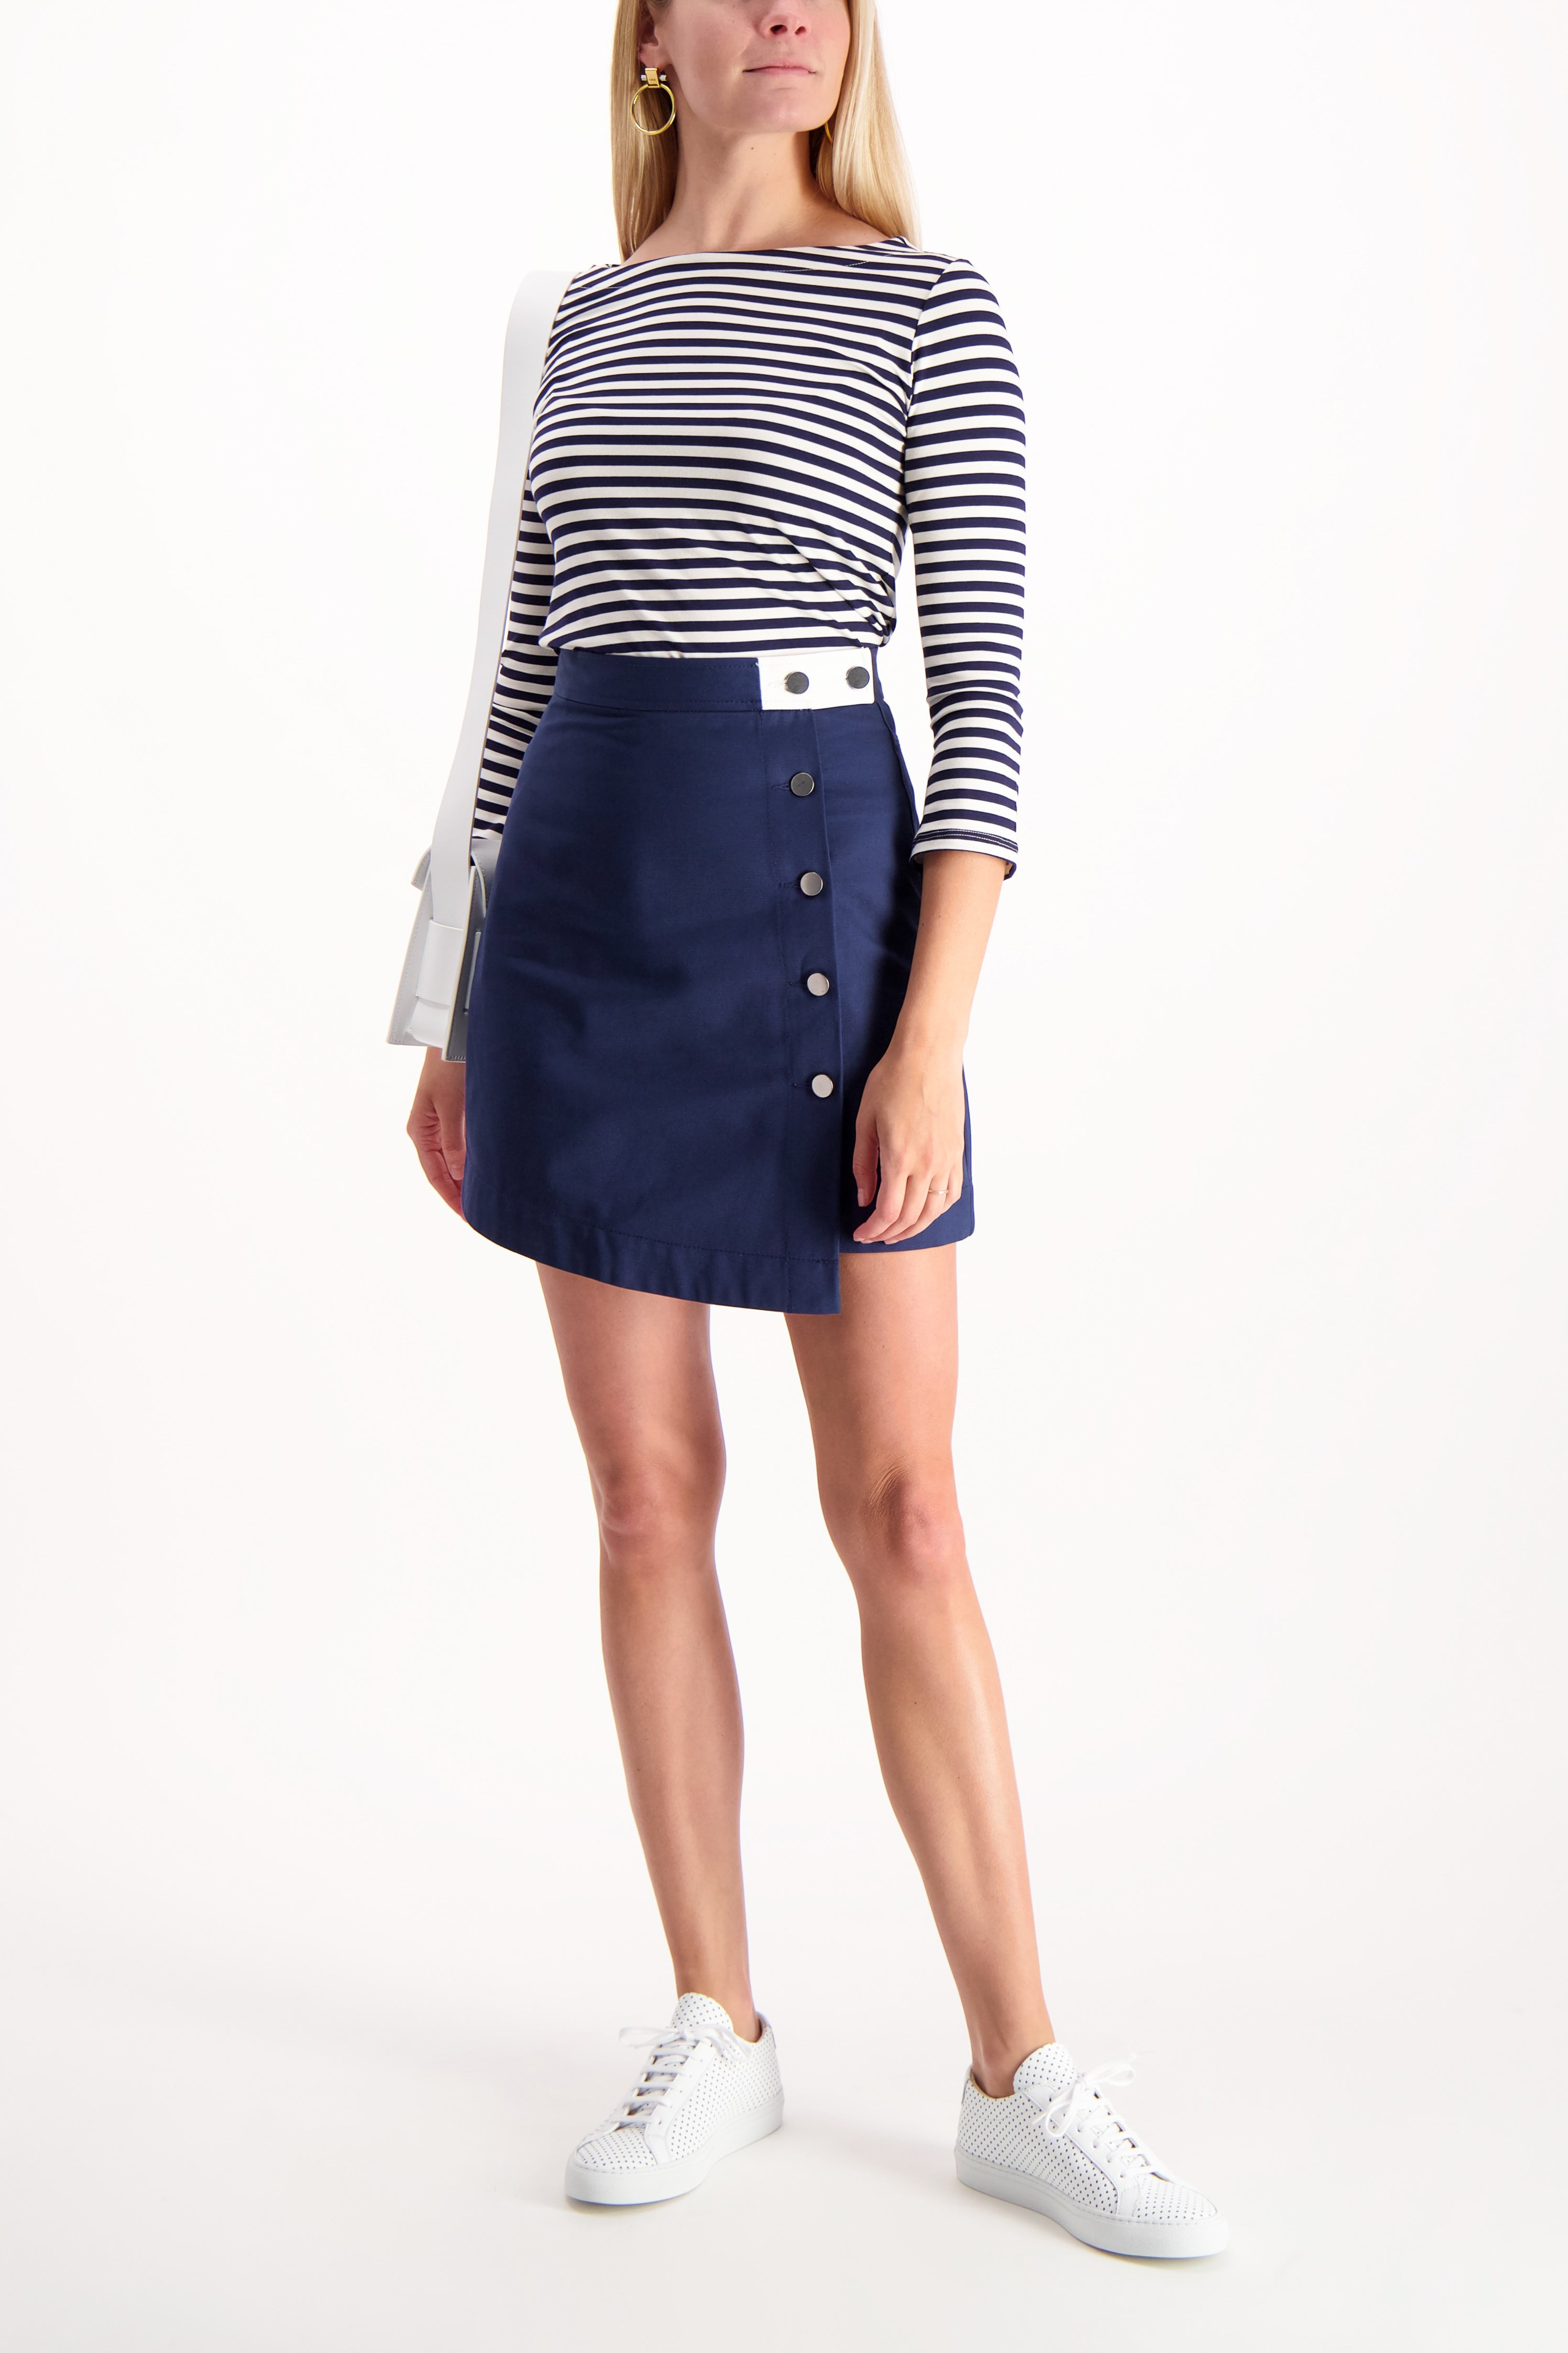 Full Body Image Of Model Wearing Lucy Boat Neck Shirt